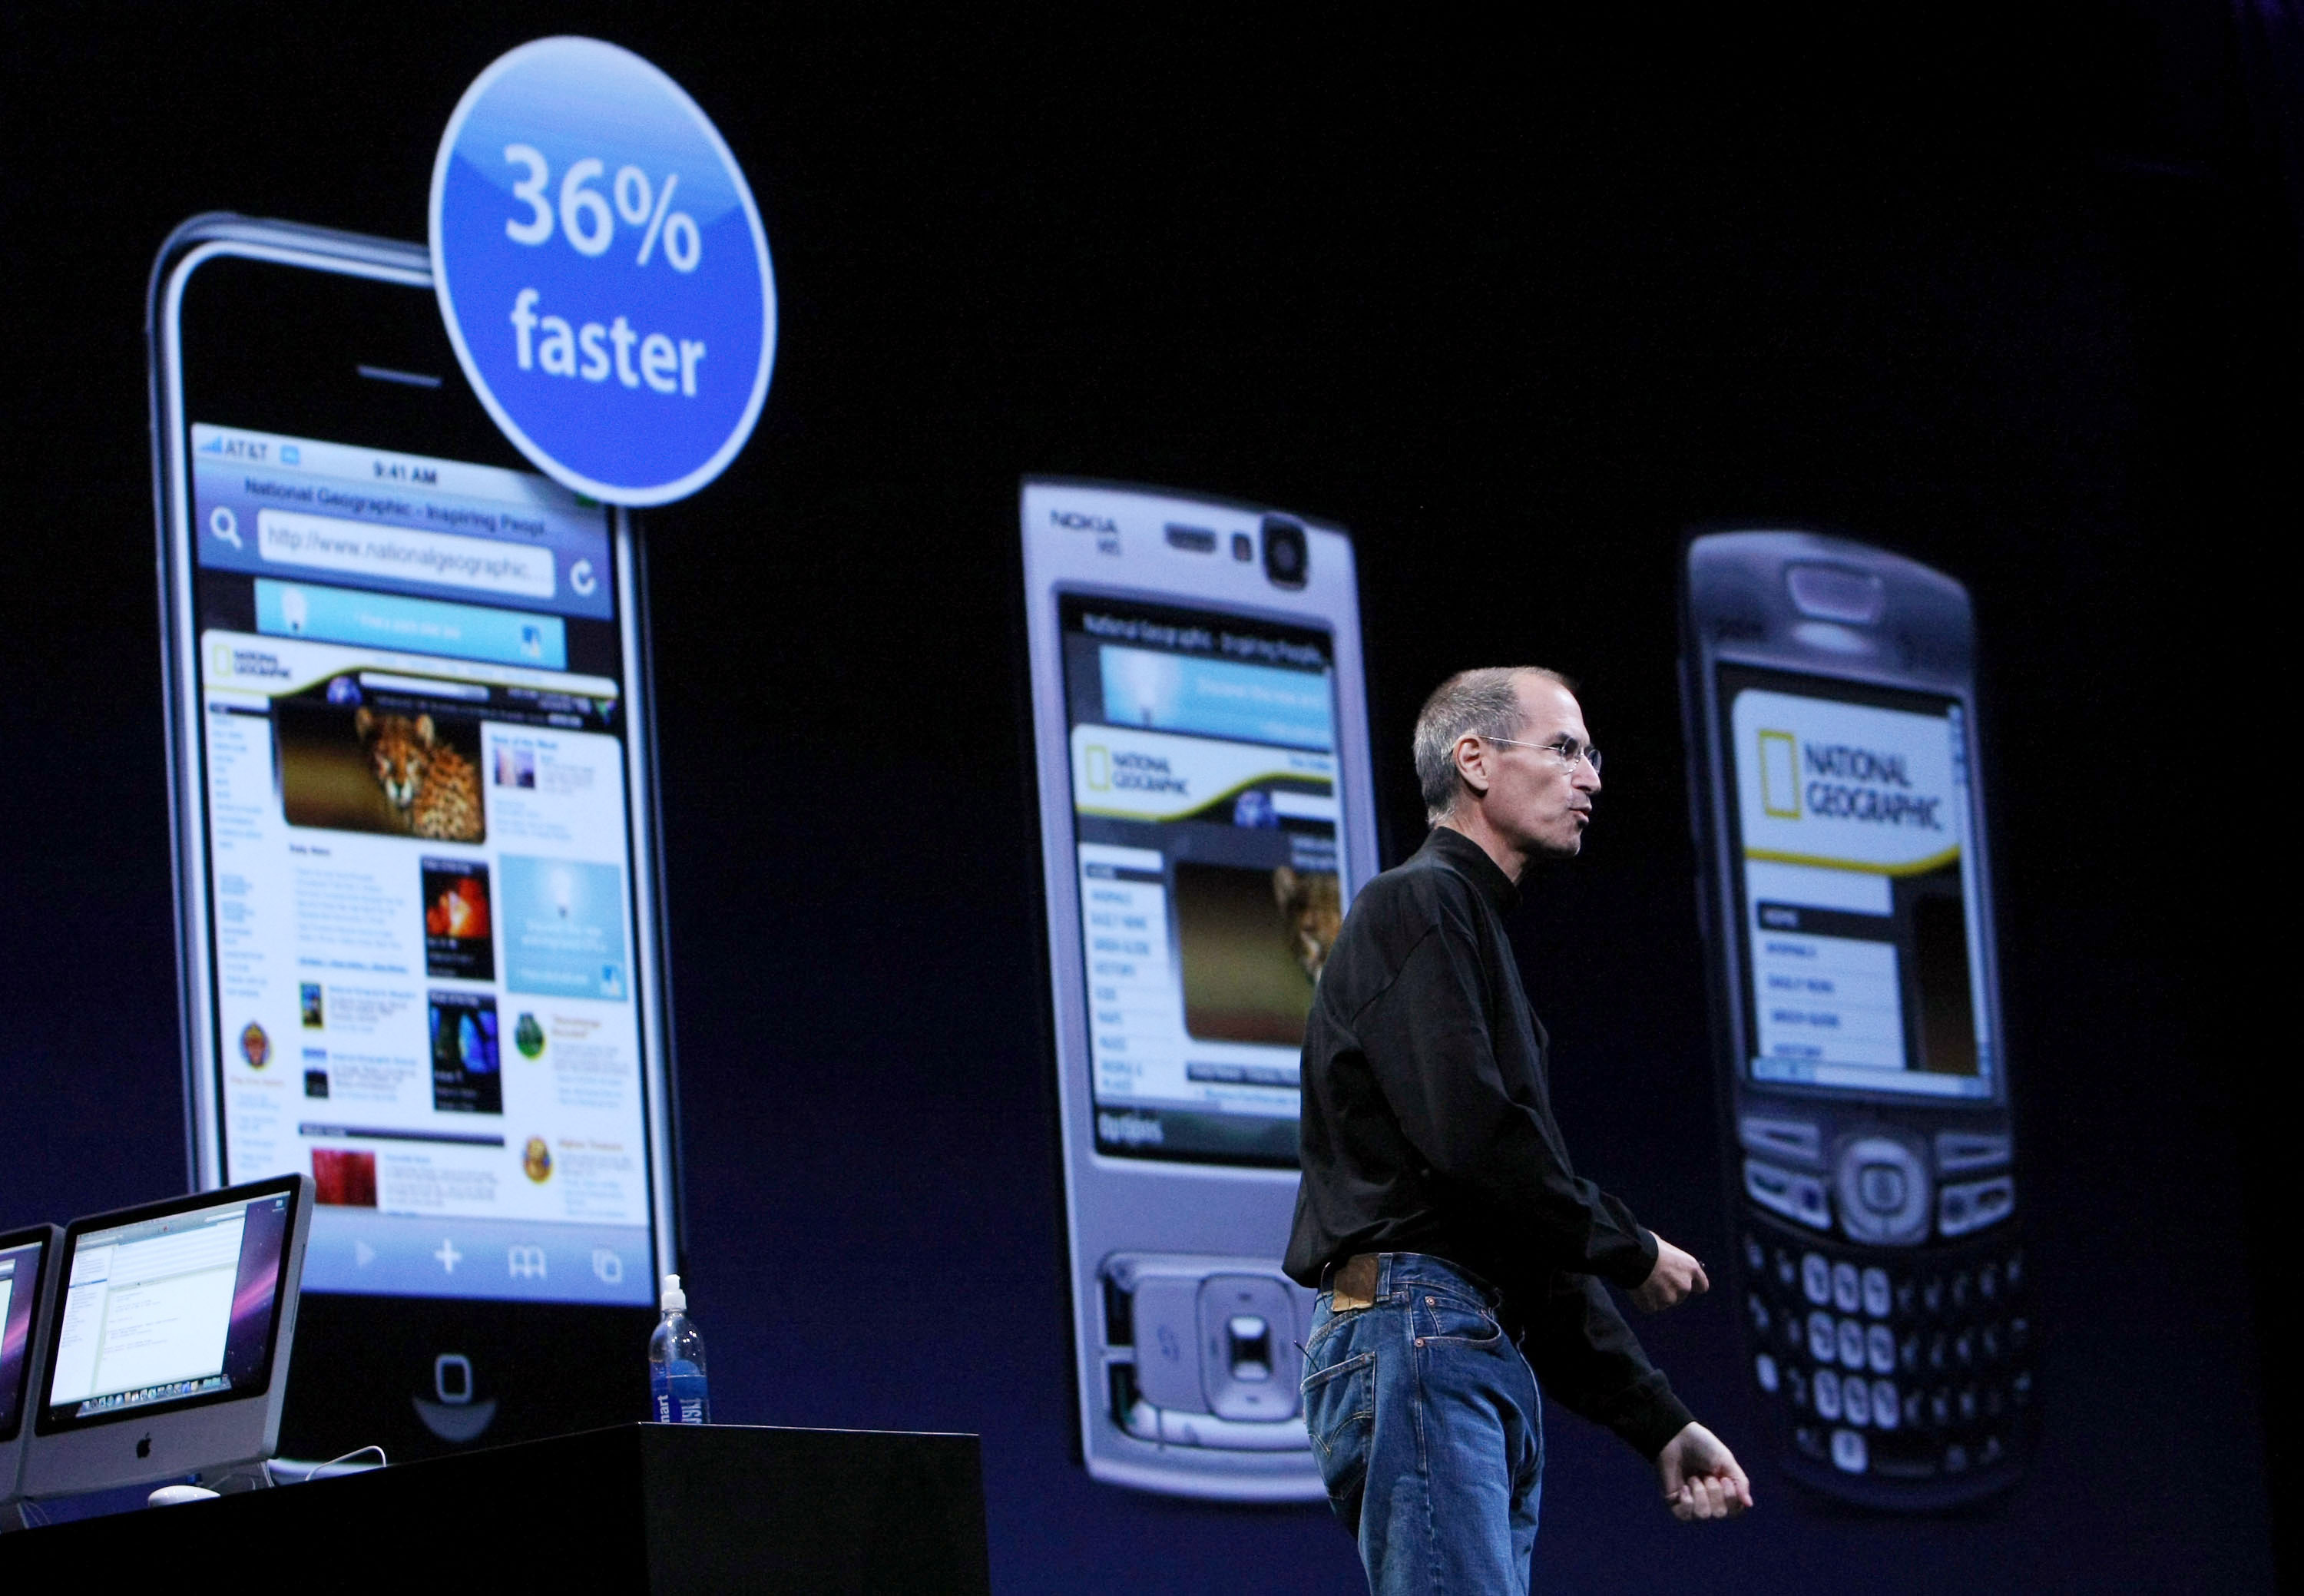 2008: The iPhone gets 3G